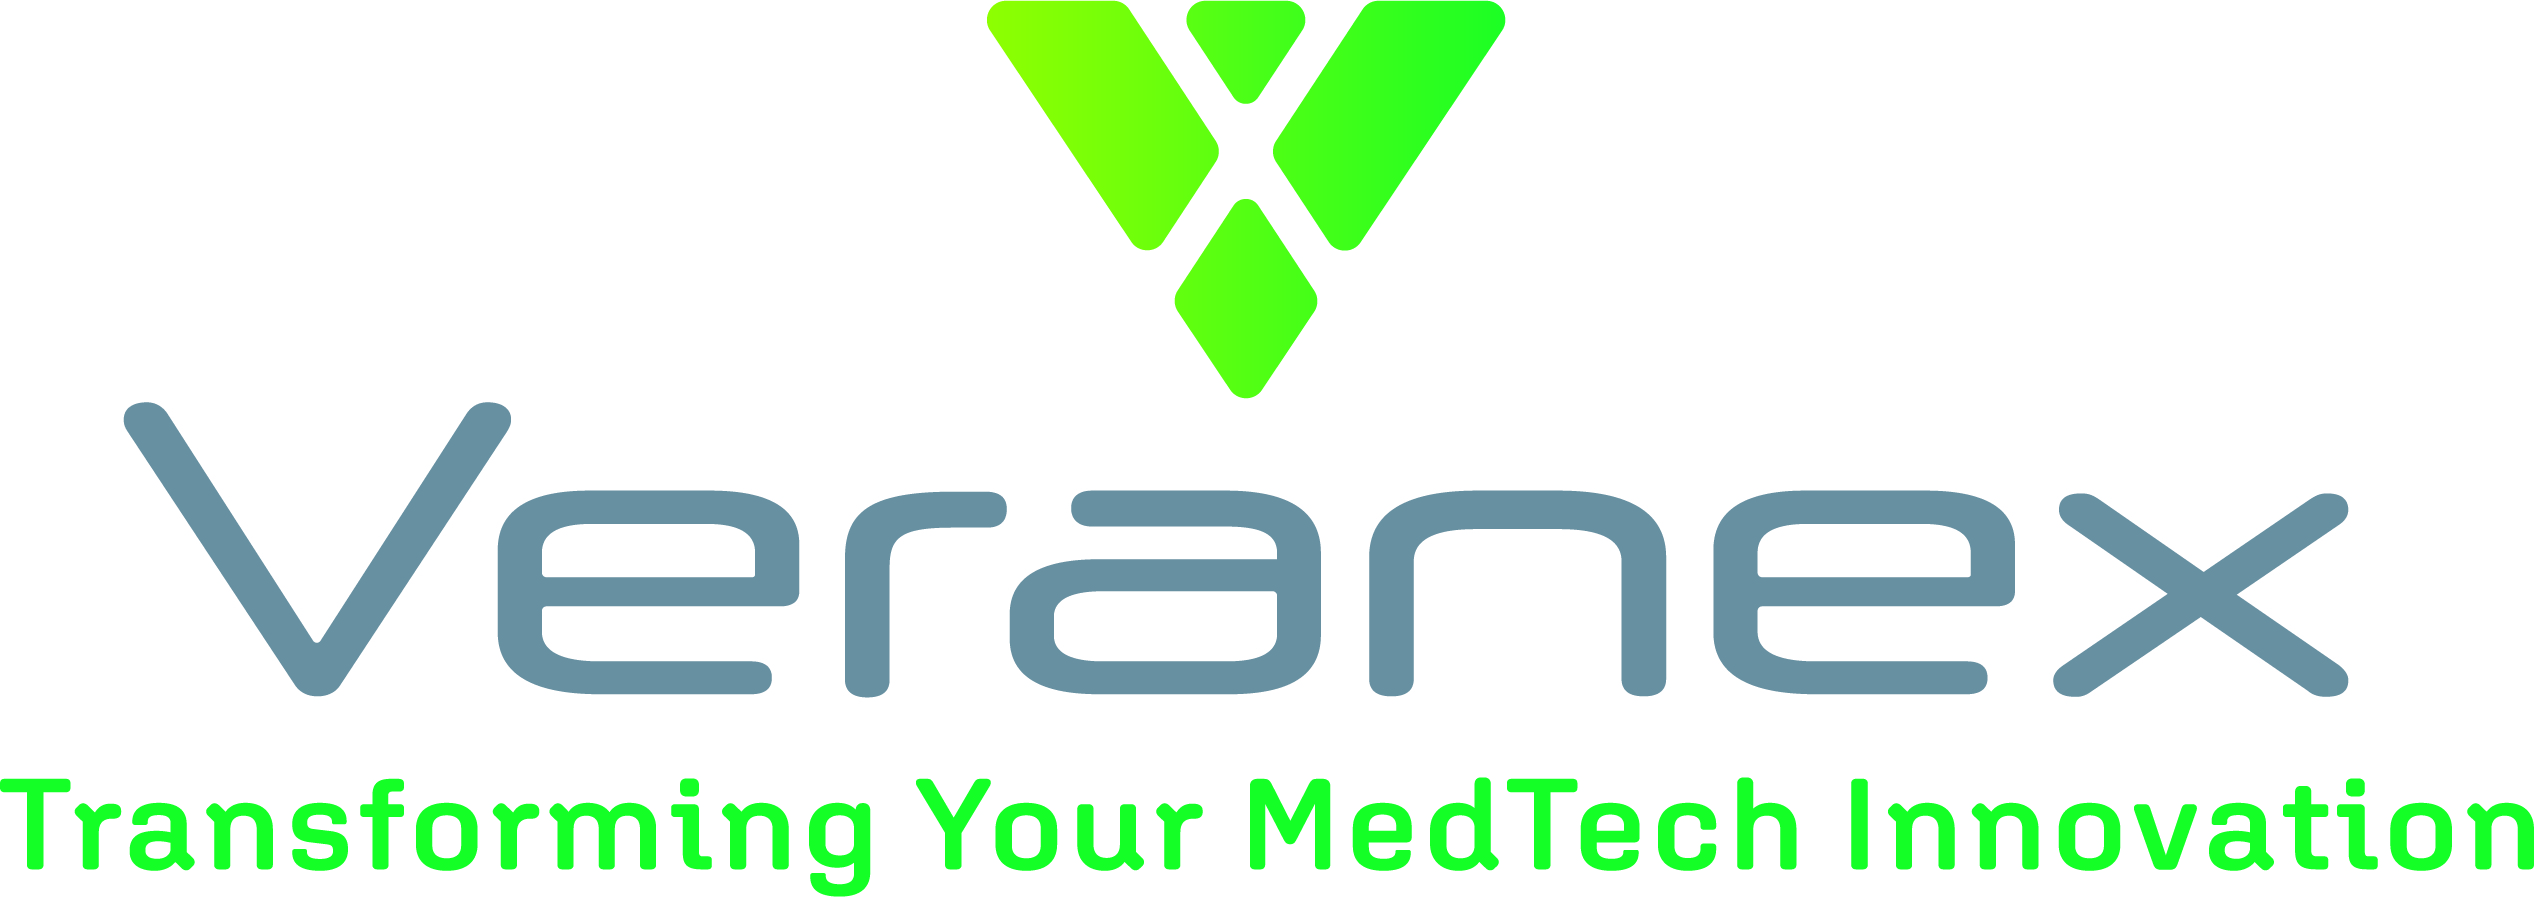 Veranex Announces Investment From Summit Partners to Form Comprehensive Concept-to-Commercialization Medtech Services Company